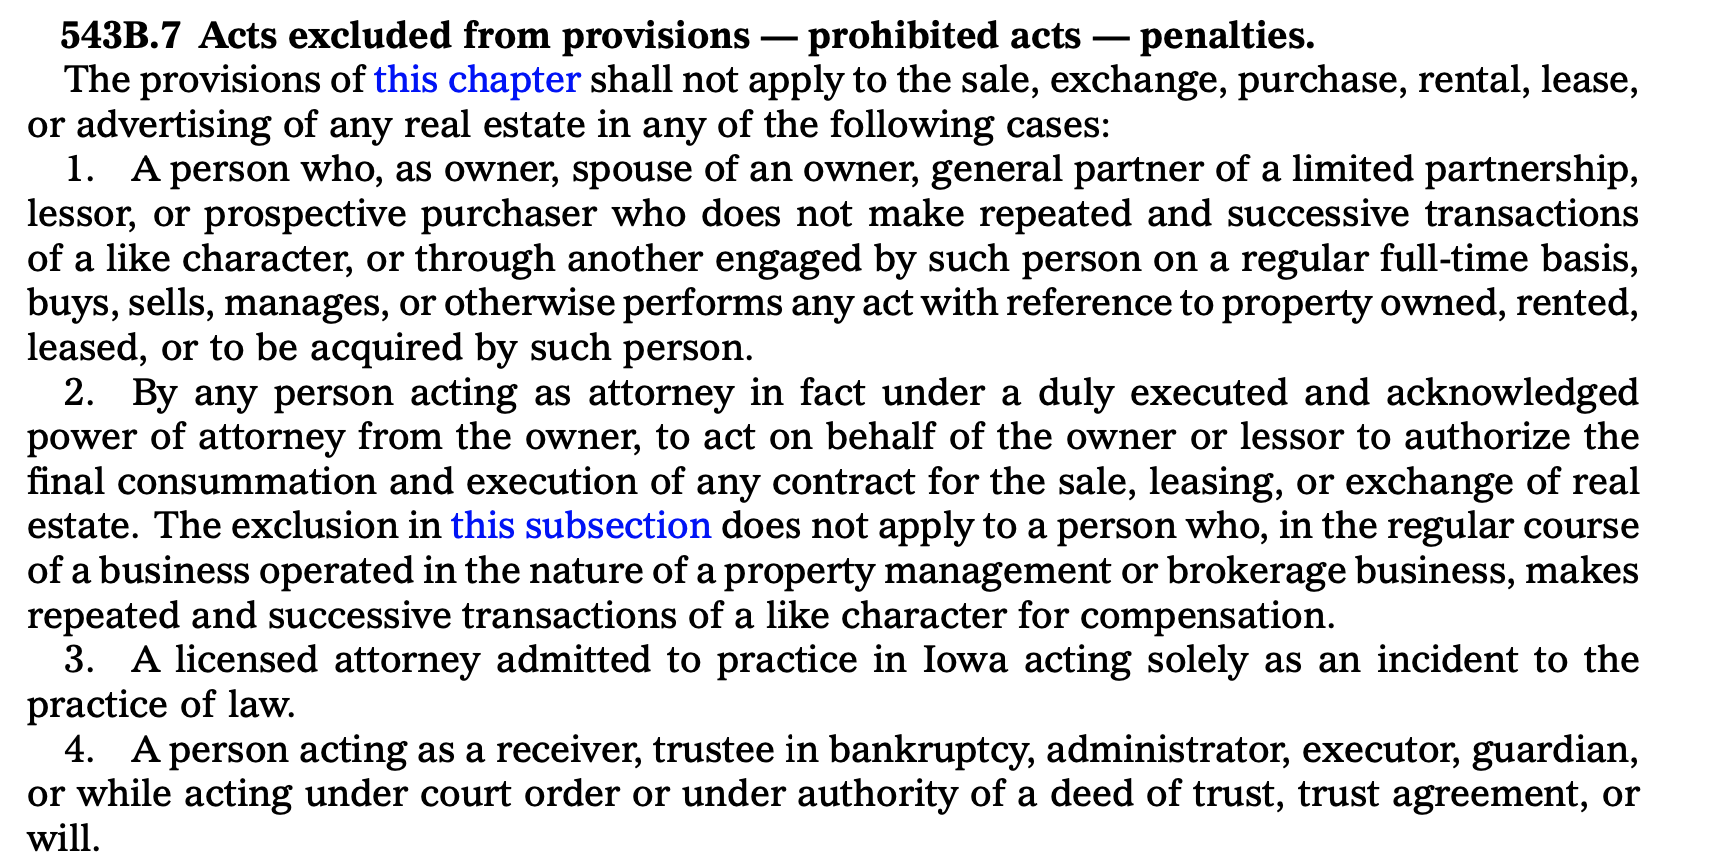 Iowa real estate wholesaling exclusions and penalties